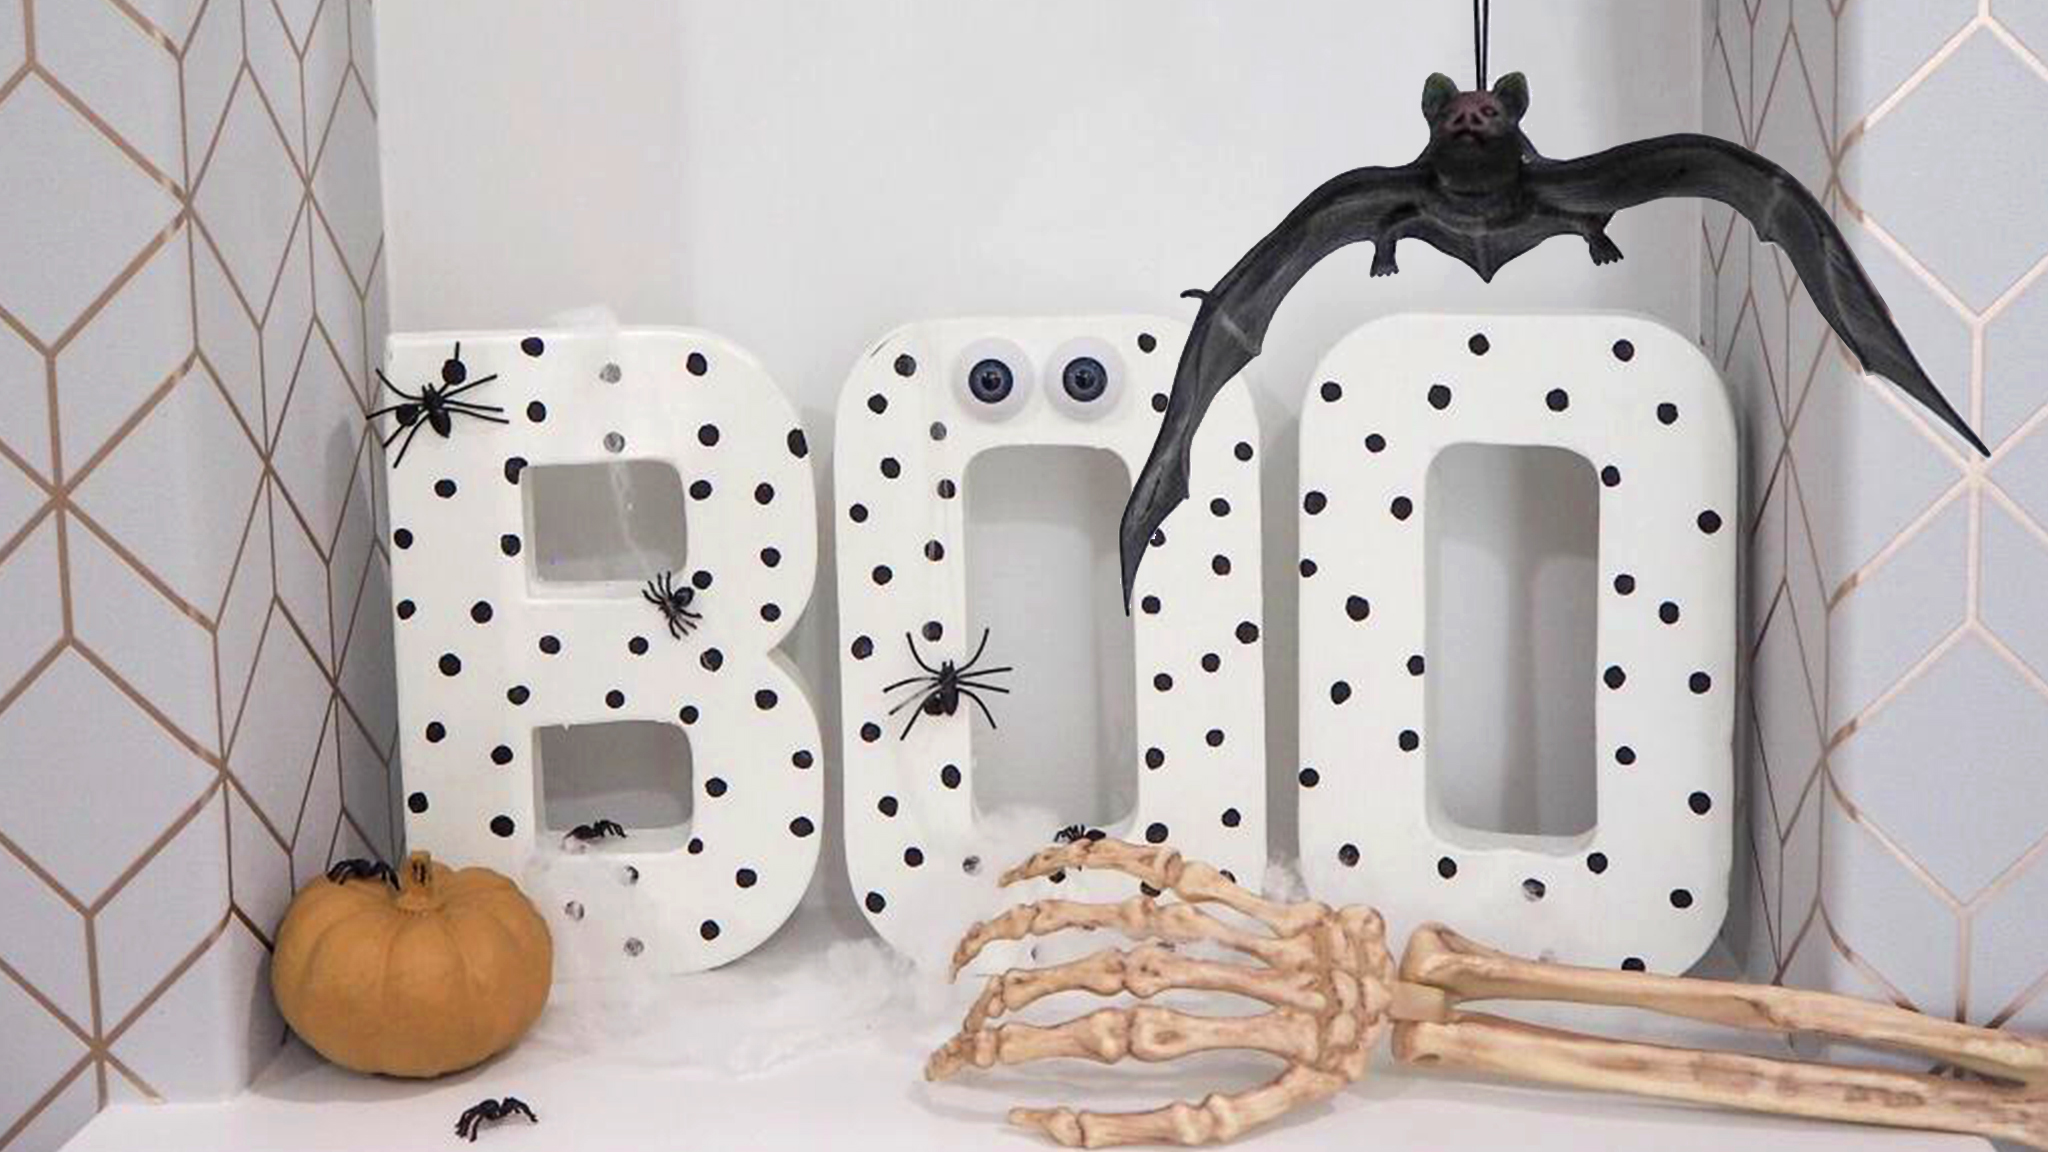 Boo sign for spooky shelves or window sills